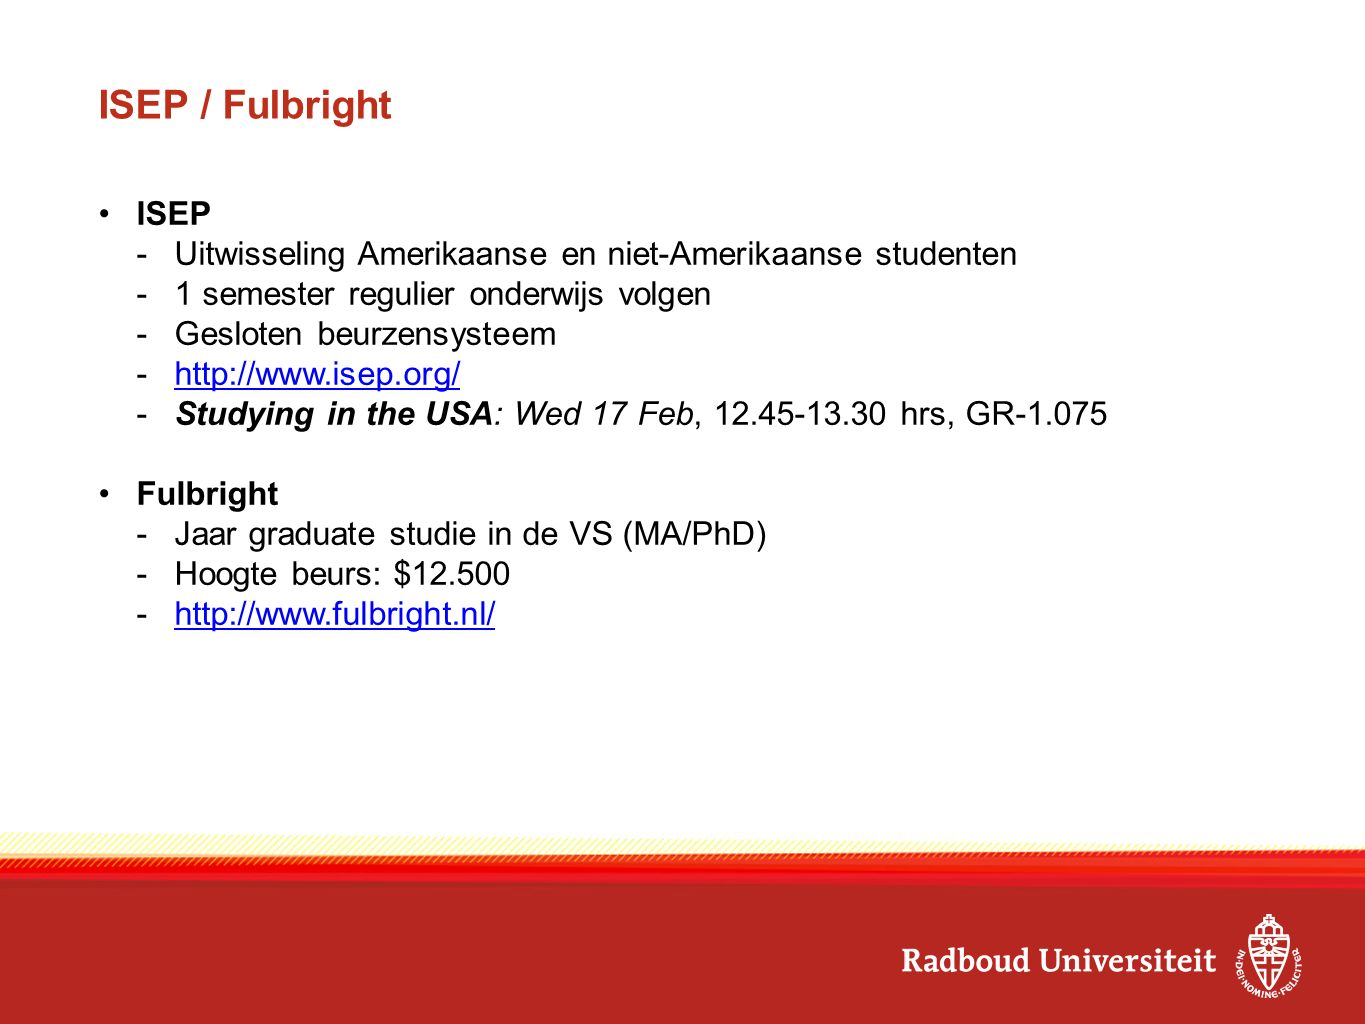 ISEP / Fulbright ISEP -Uitwisseling Amerikaanse en niet-Amerikaanse studenten -1 semester regulier onderwijs volgen -Gesloten beurzensysteem -http://www.isep.org/http://www.isep.org/ -Studying in the USA: Wed 17 Feb, 12.45-13.30 hrs, GR-1.075 Fulbright -Jaar graduate studie in de VS (MA/PhD) -Hoogte beurs: $12.500 -http://www.fulbright.nl/http://www.fulbright.nl/